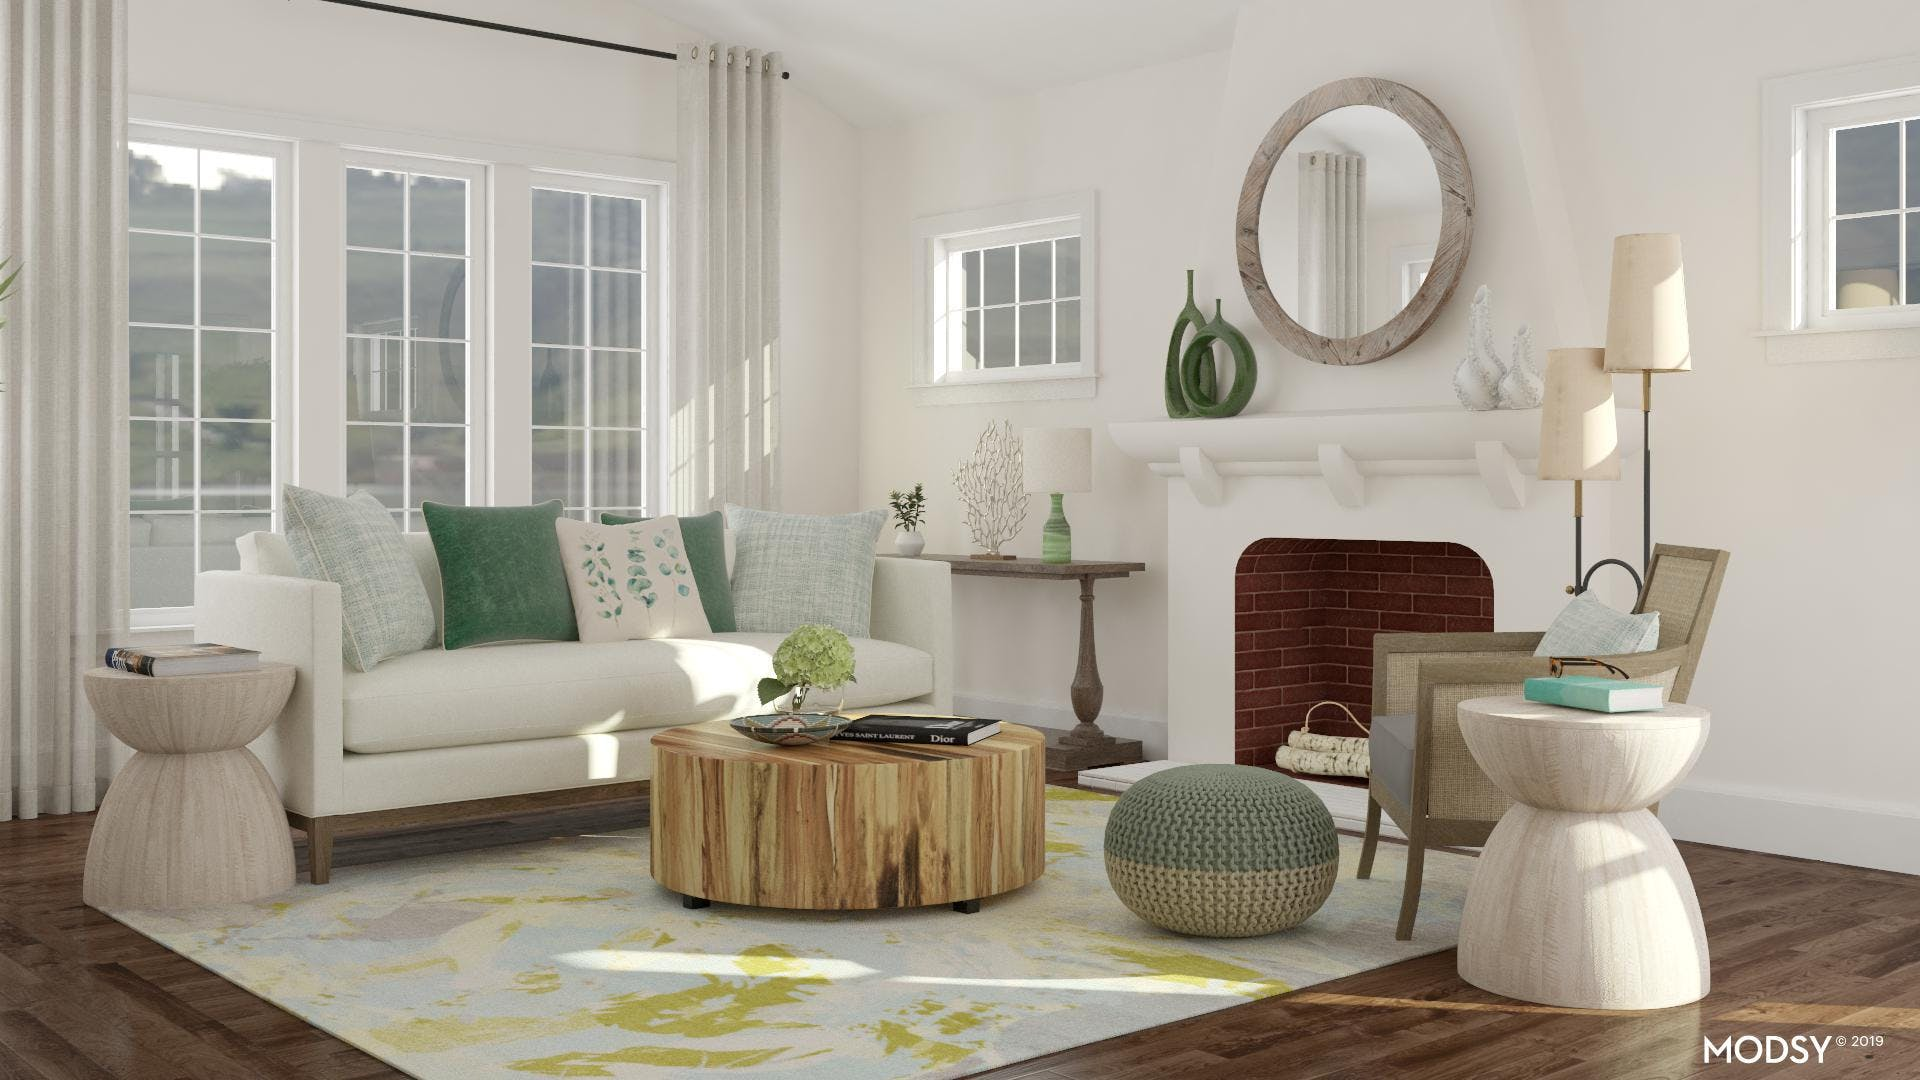 Powerful Punched Of Green In A Coastal Design